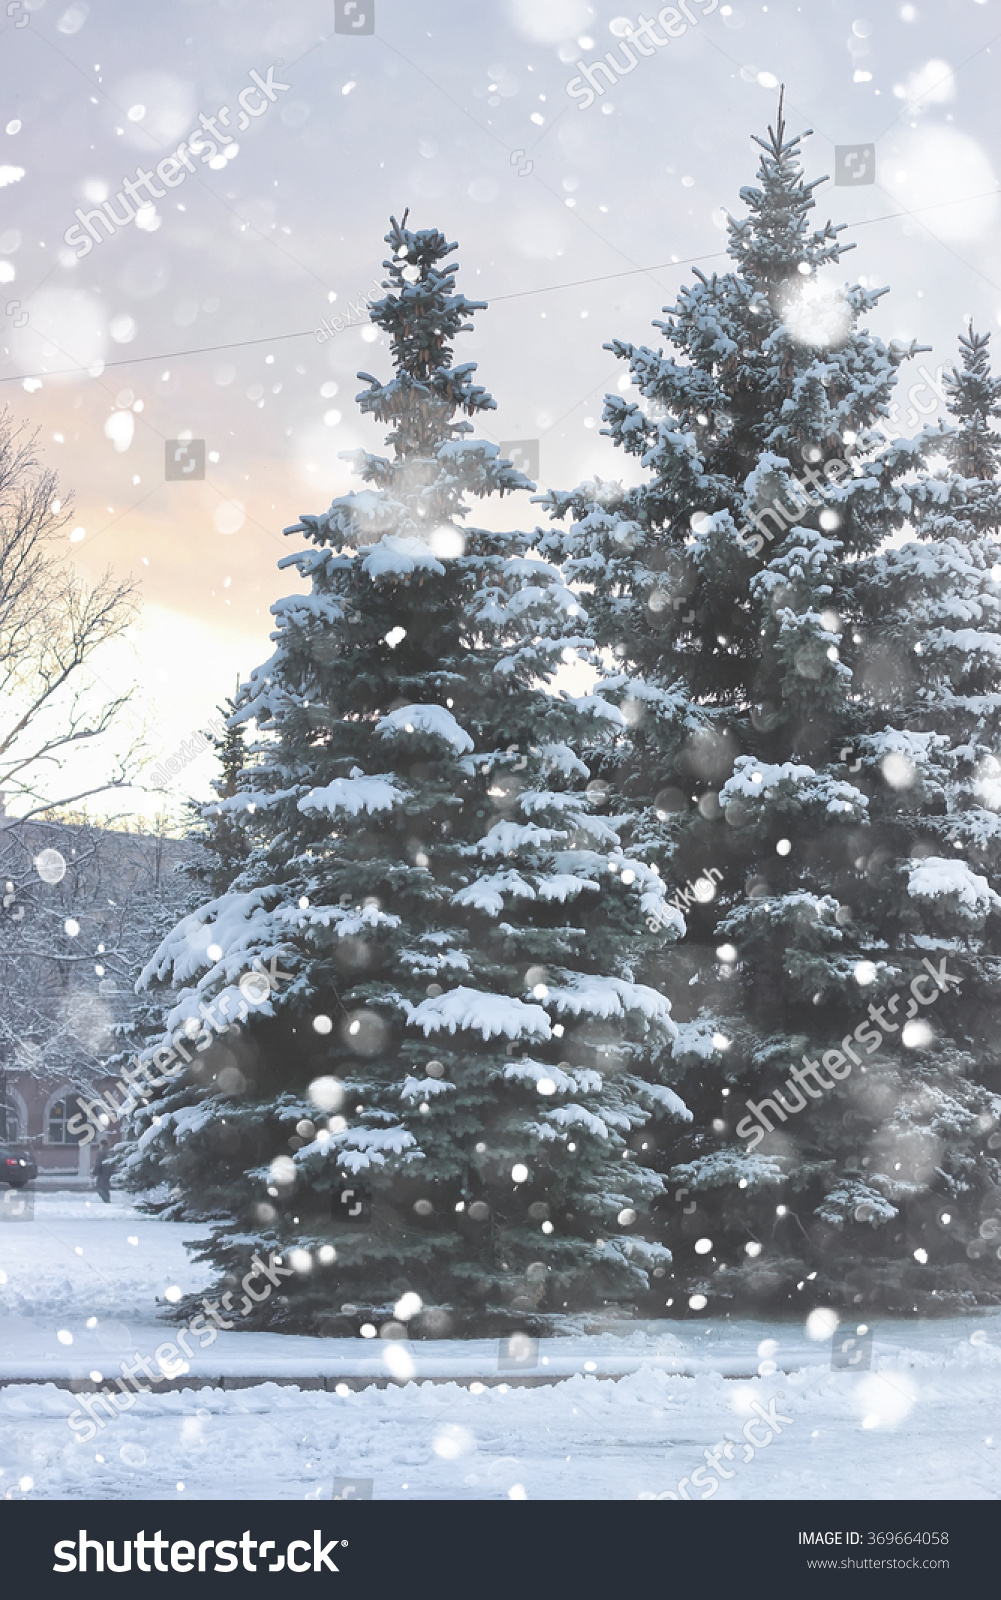 winter fir tree snow